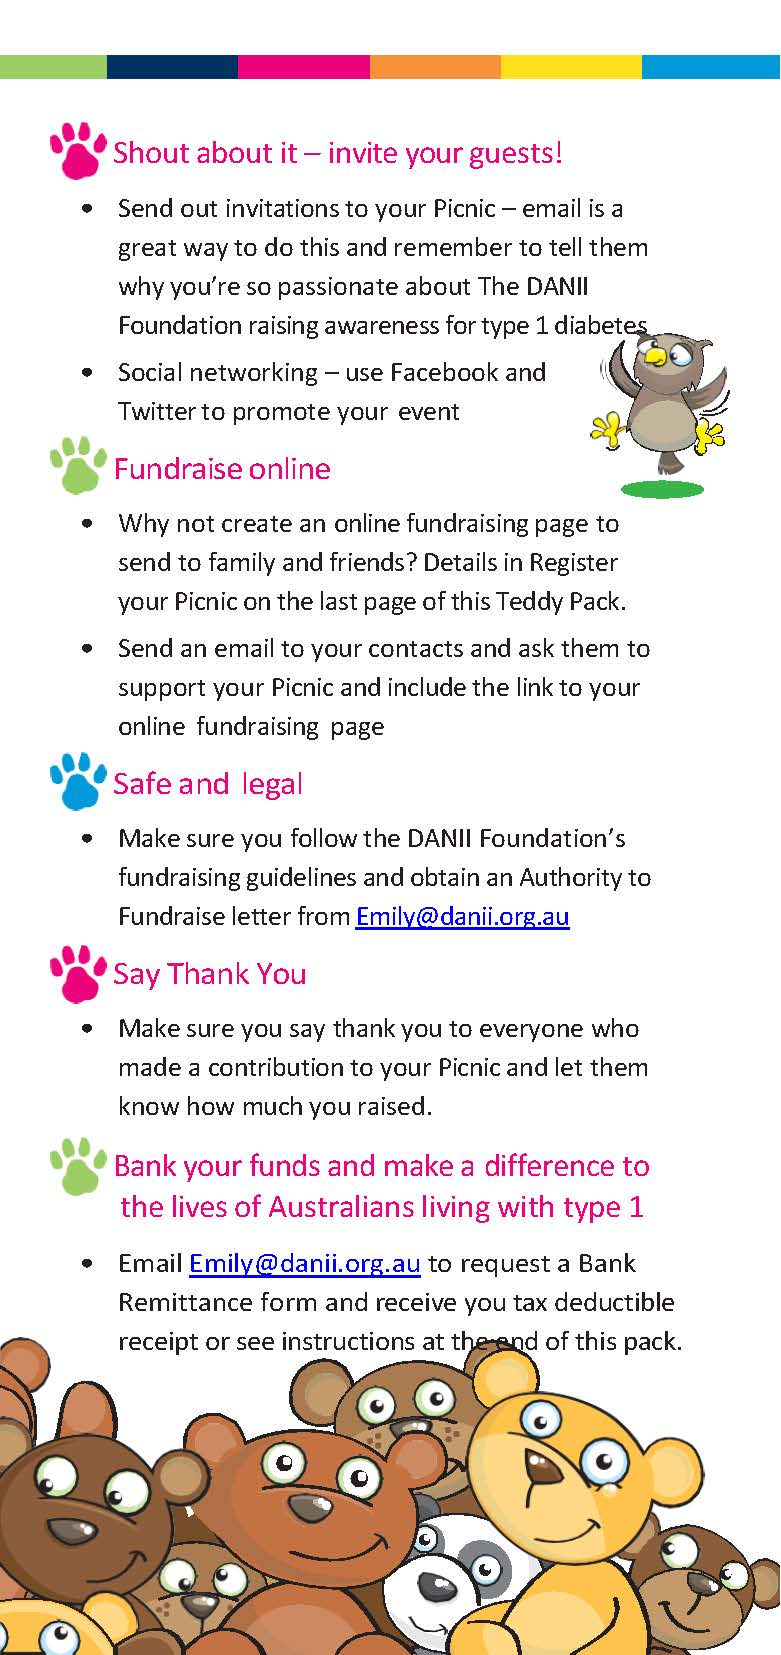 WORLD-DIABETESDAY_Teddy Bears Picnic-Picnic-Pack-Support-DANII_Page_3